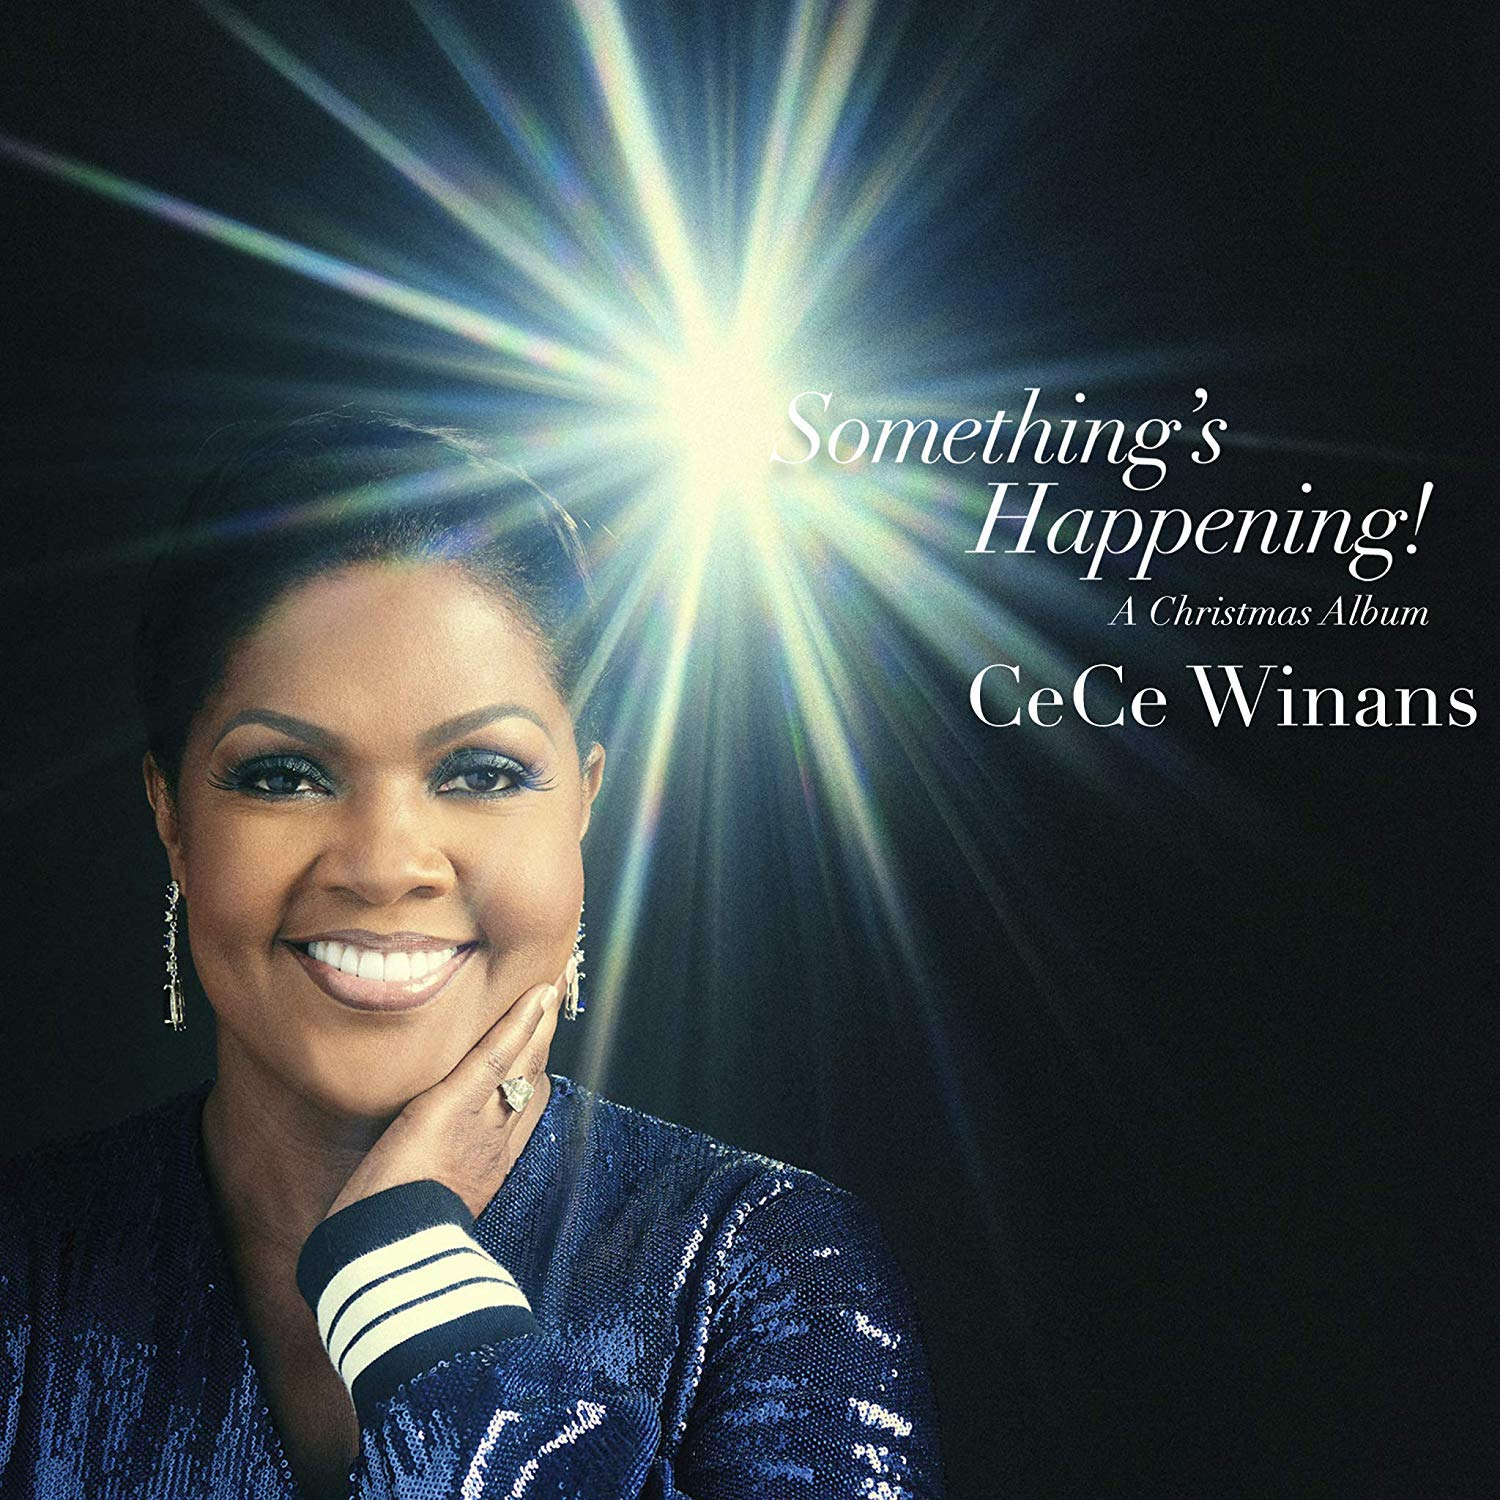 Cece Winans We Welcome You Free Mp3 Download